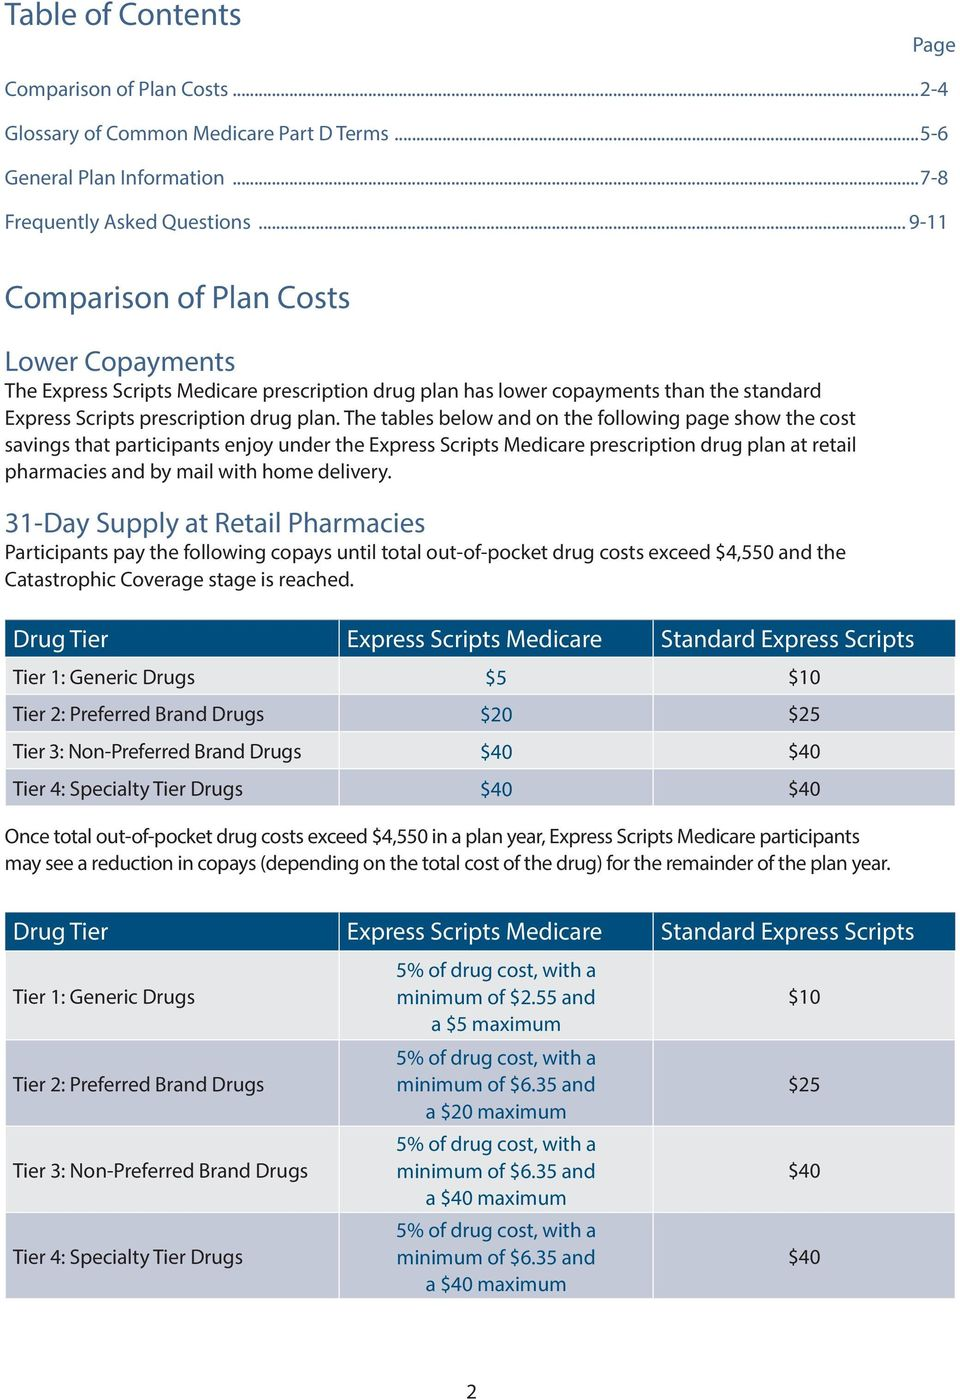 The tables below and on the following page show the cost savings that participants enjoy under the Express Scripts Medicare prescription drug plan at retail pharmacies and by mail with home delivery.